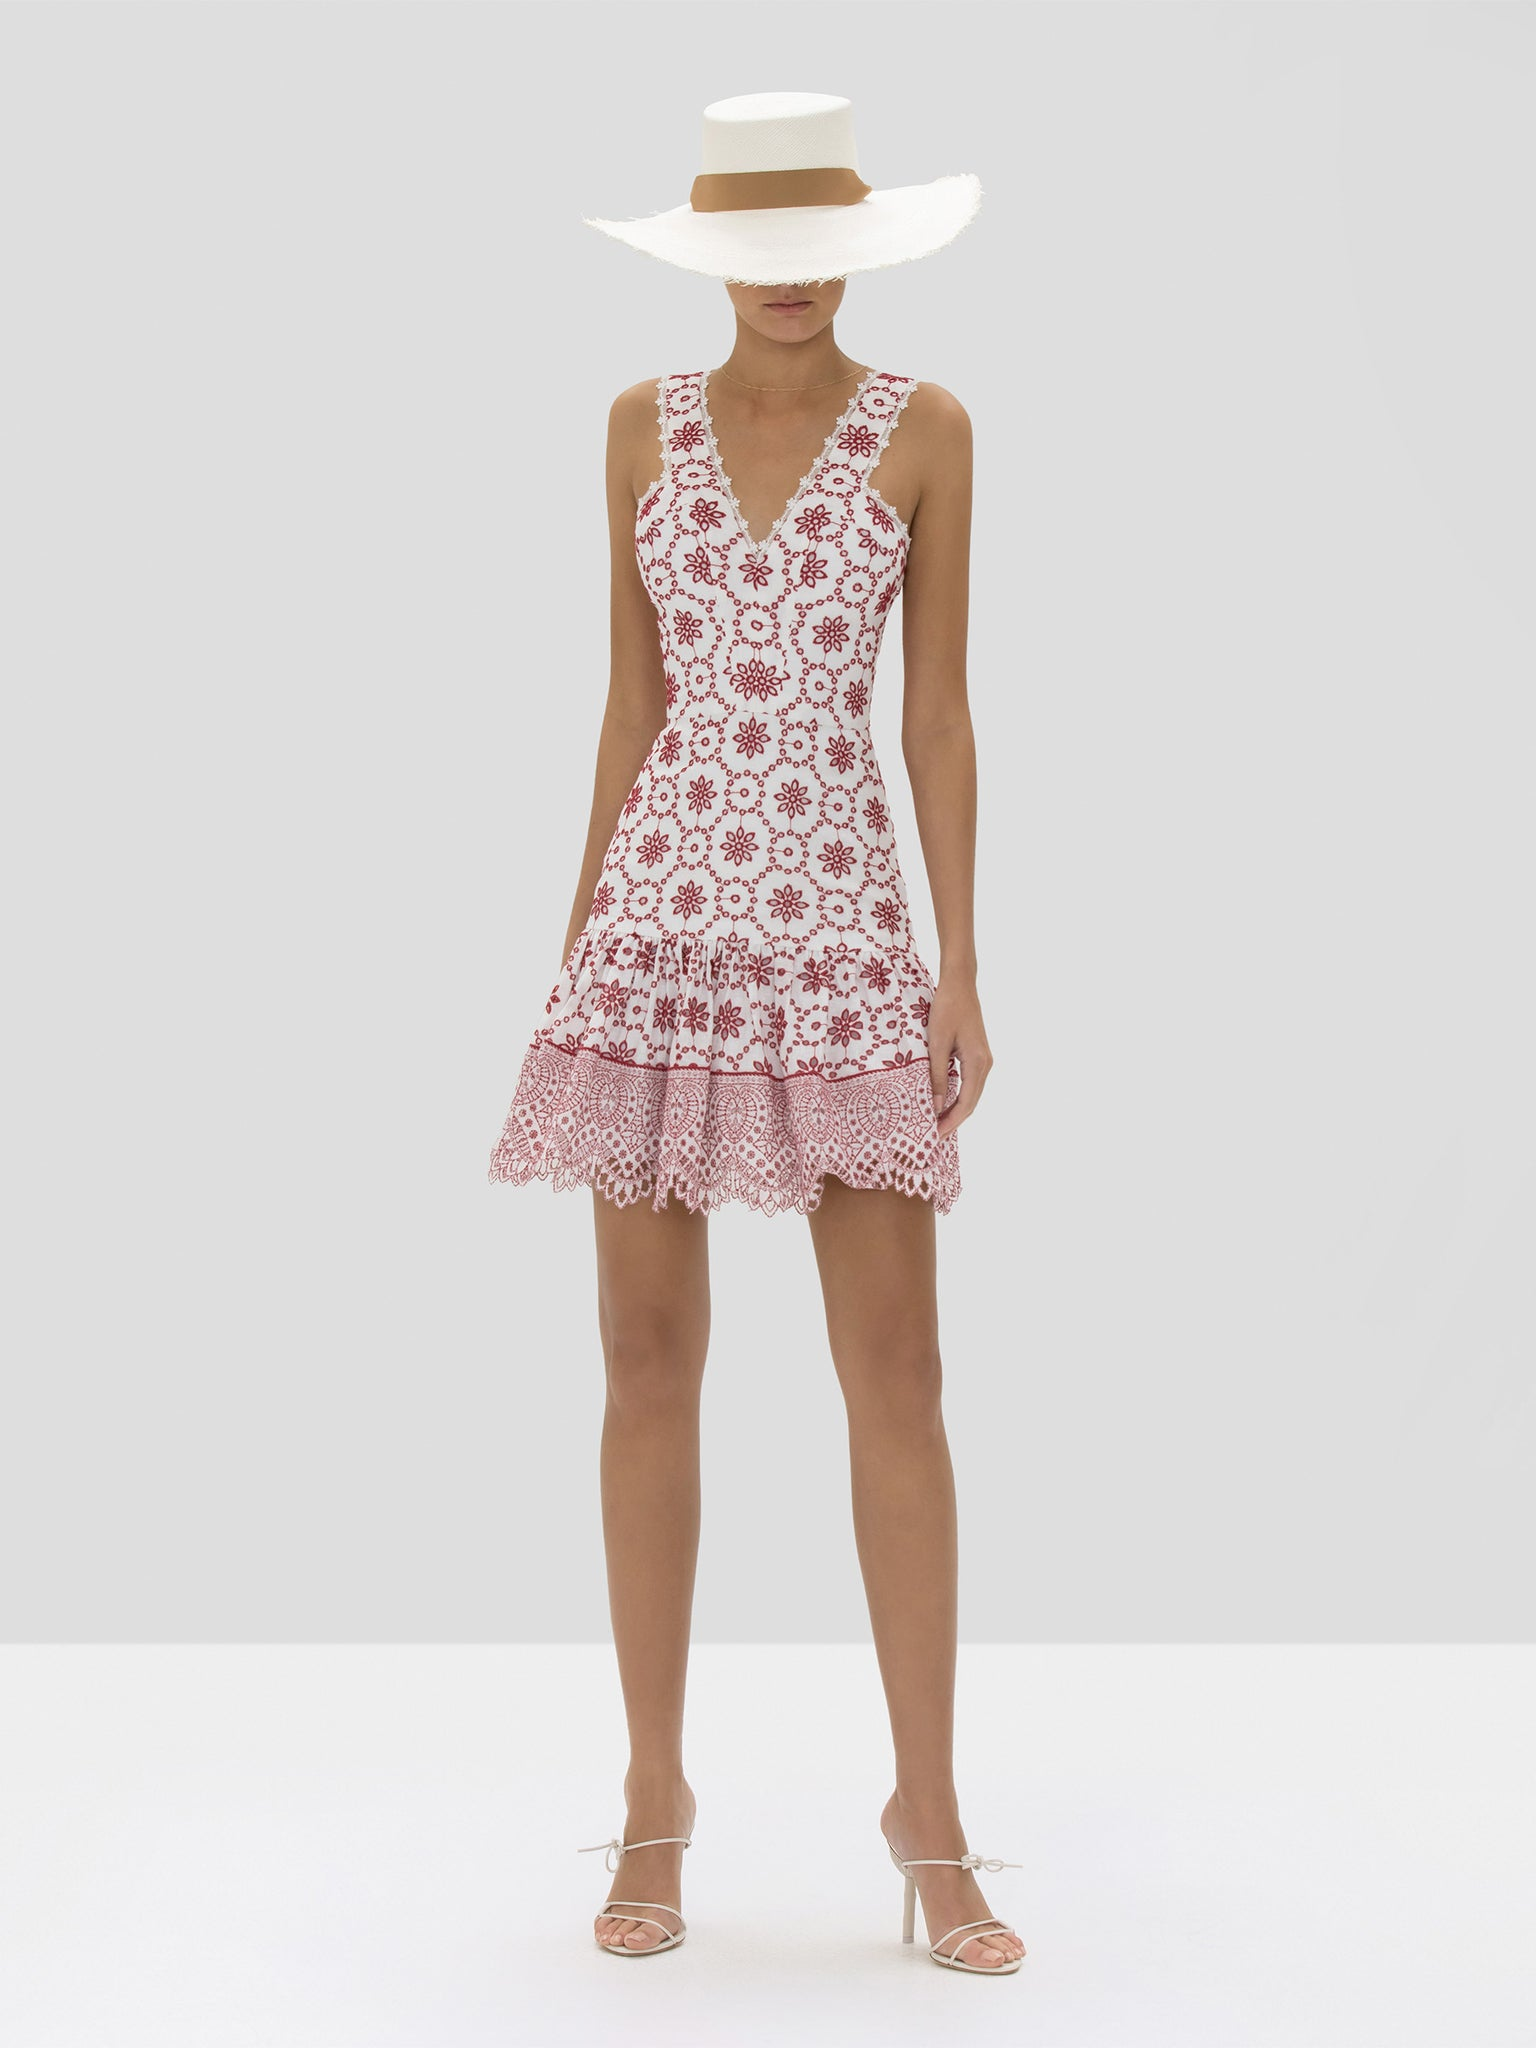 The Villa Dress in Berry Eyelet Embroidery from the Spring Summer 2020